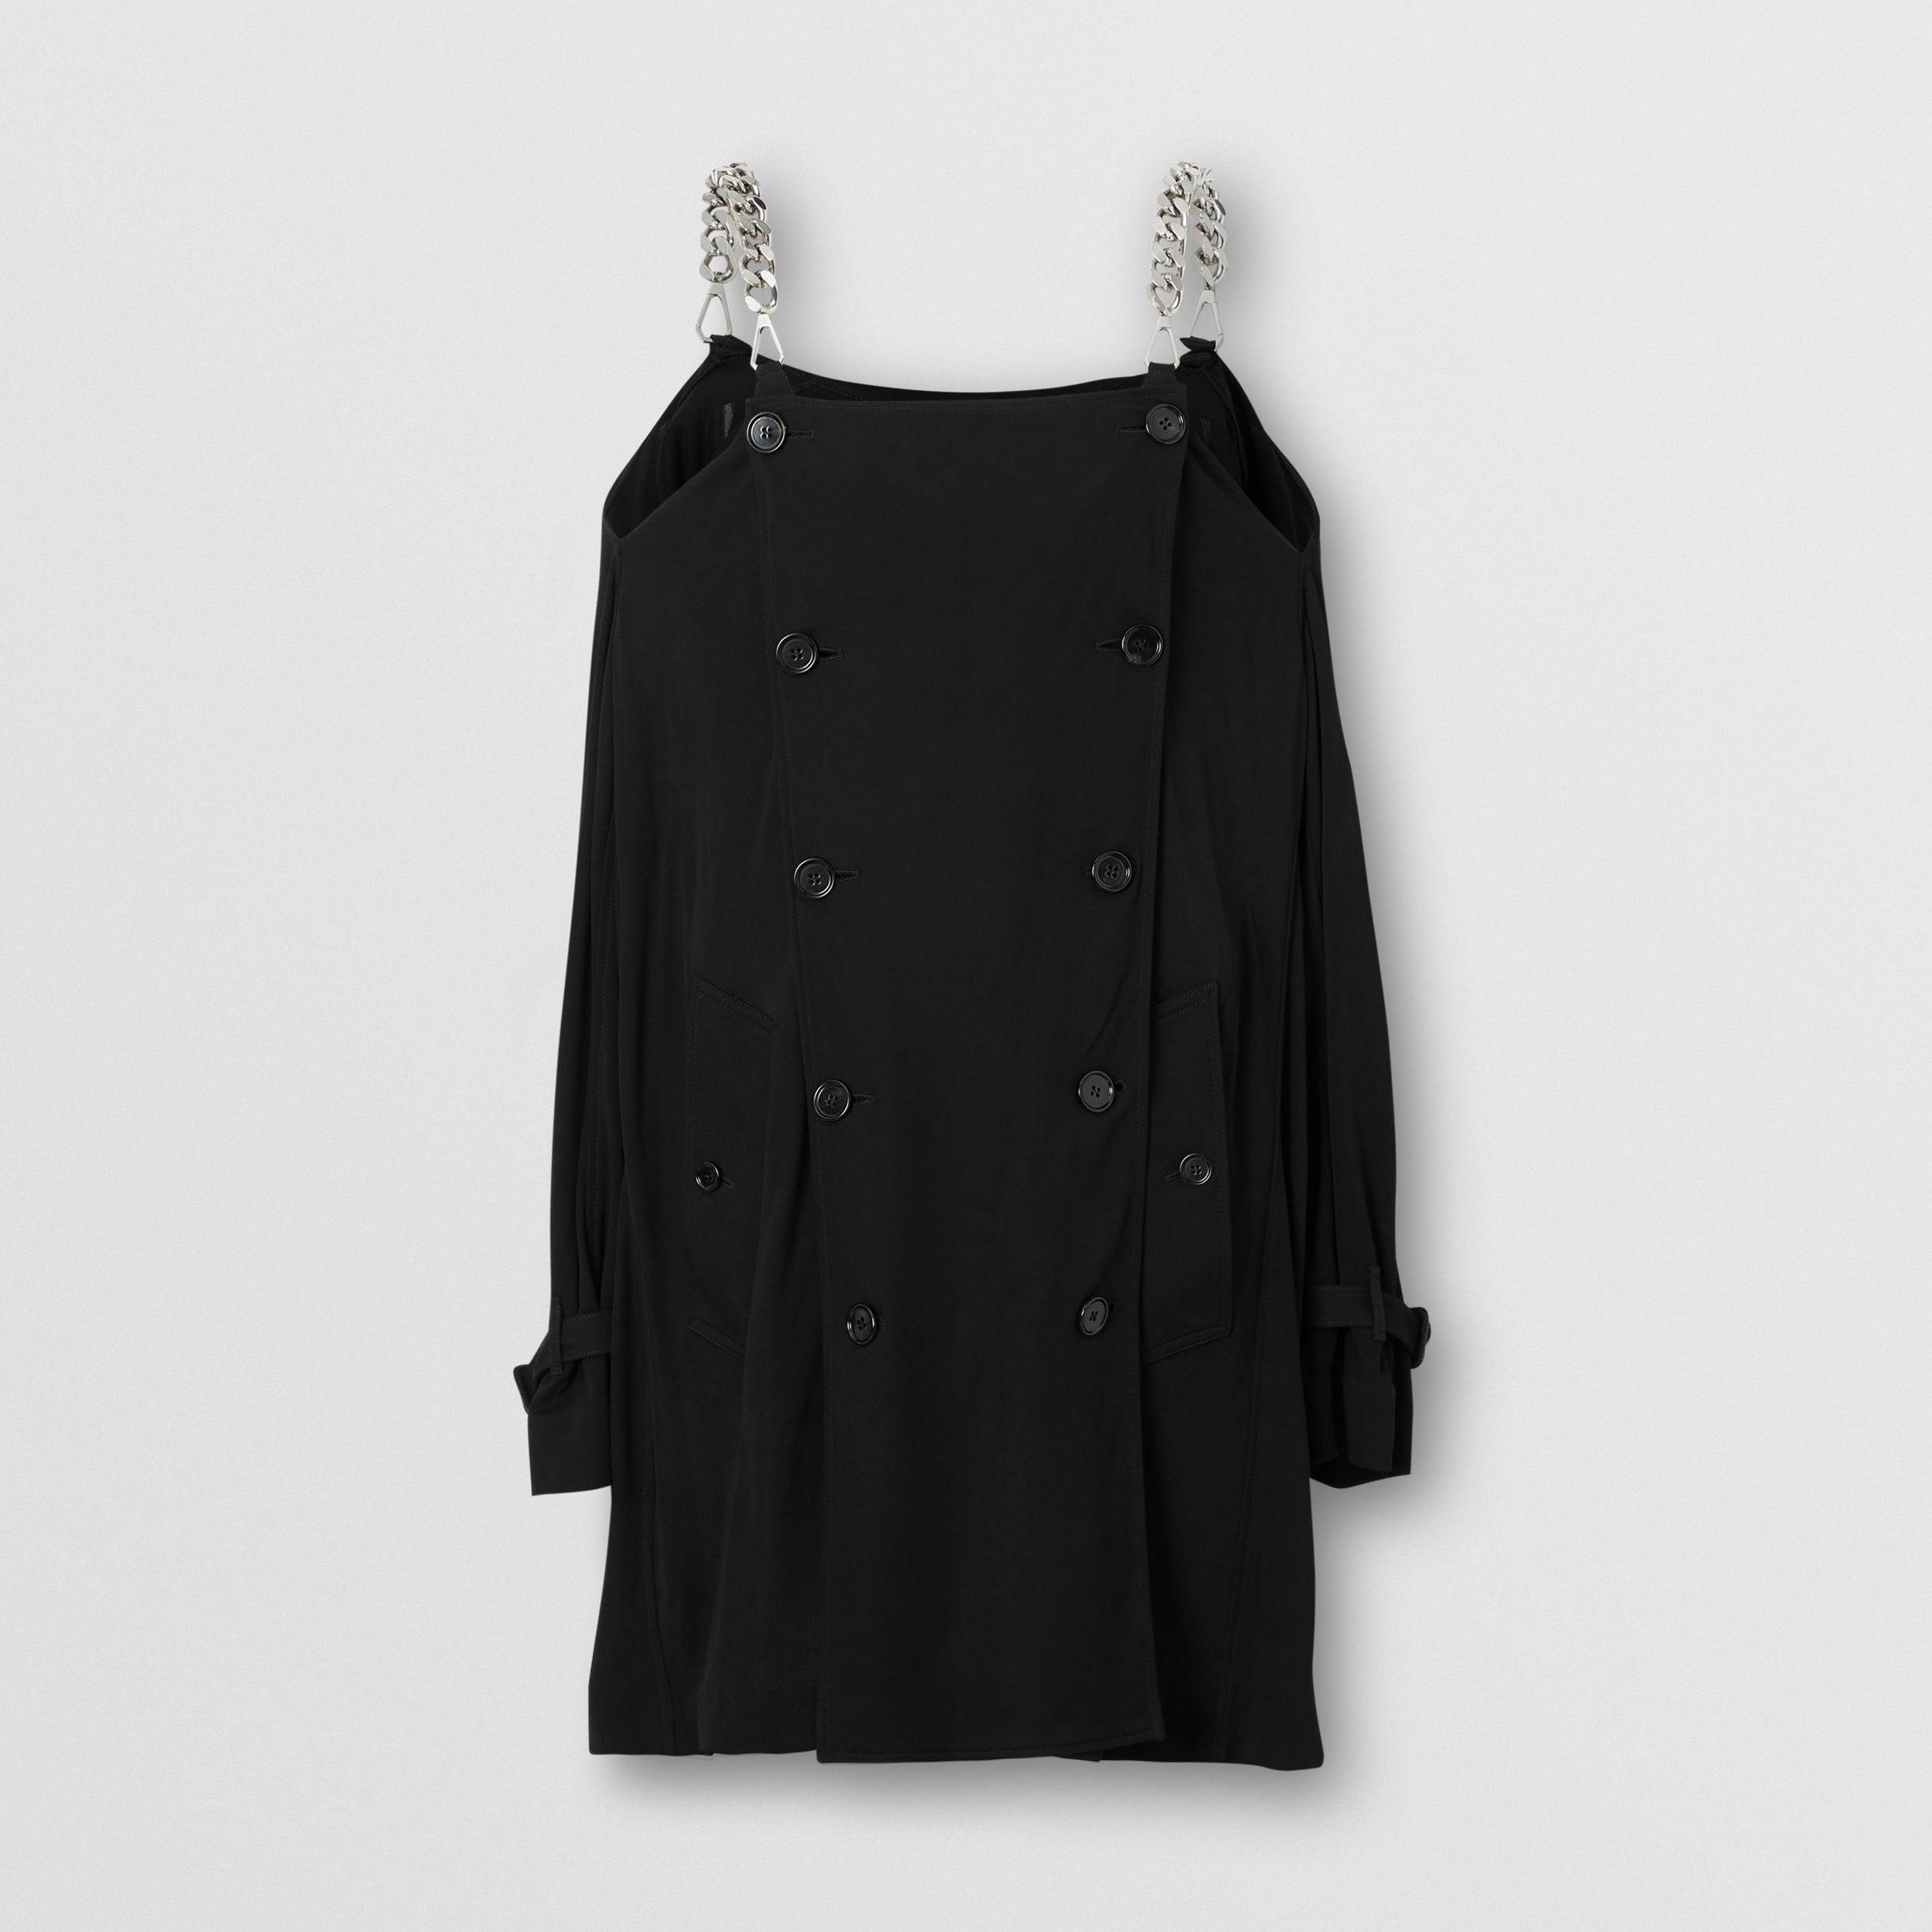 Deconstructed Crepe Trench Coat Dress in Black - Women | Burberry - 4